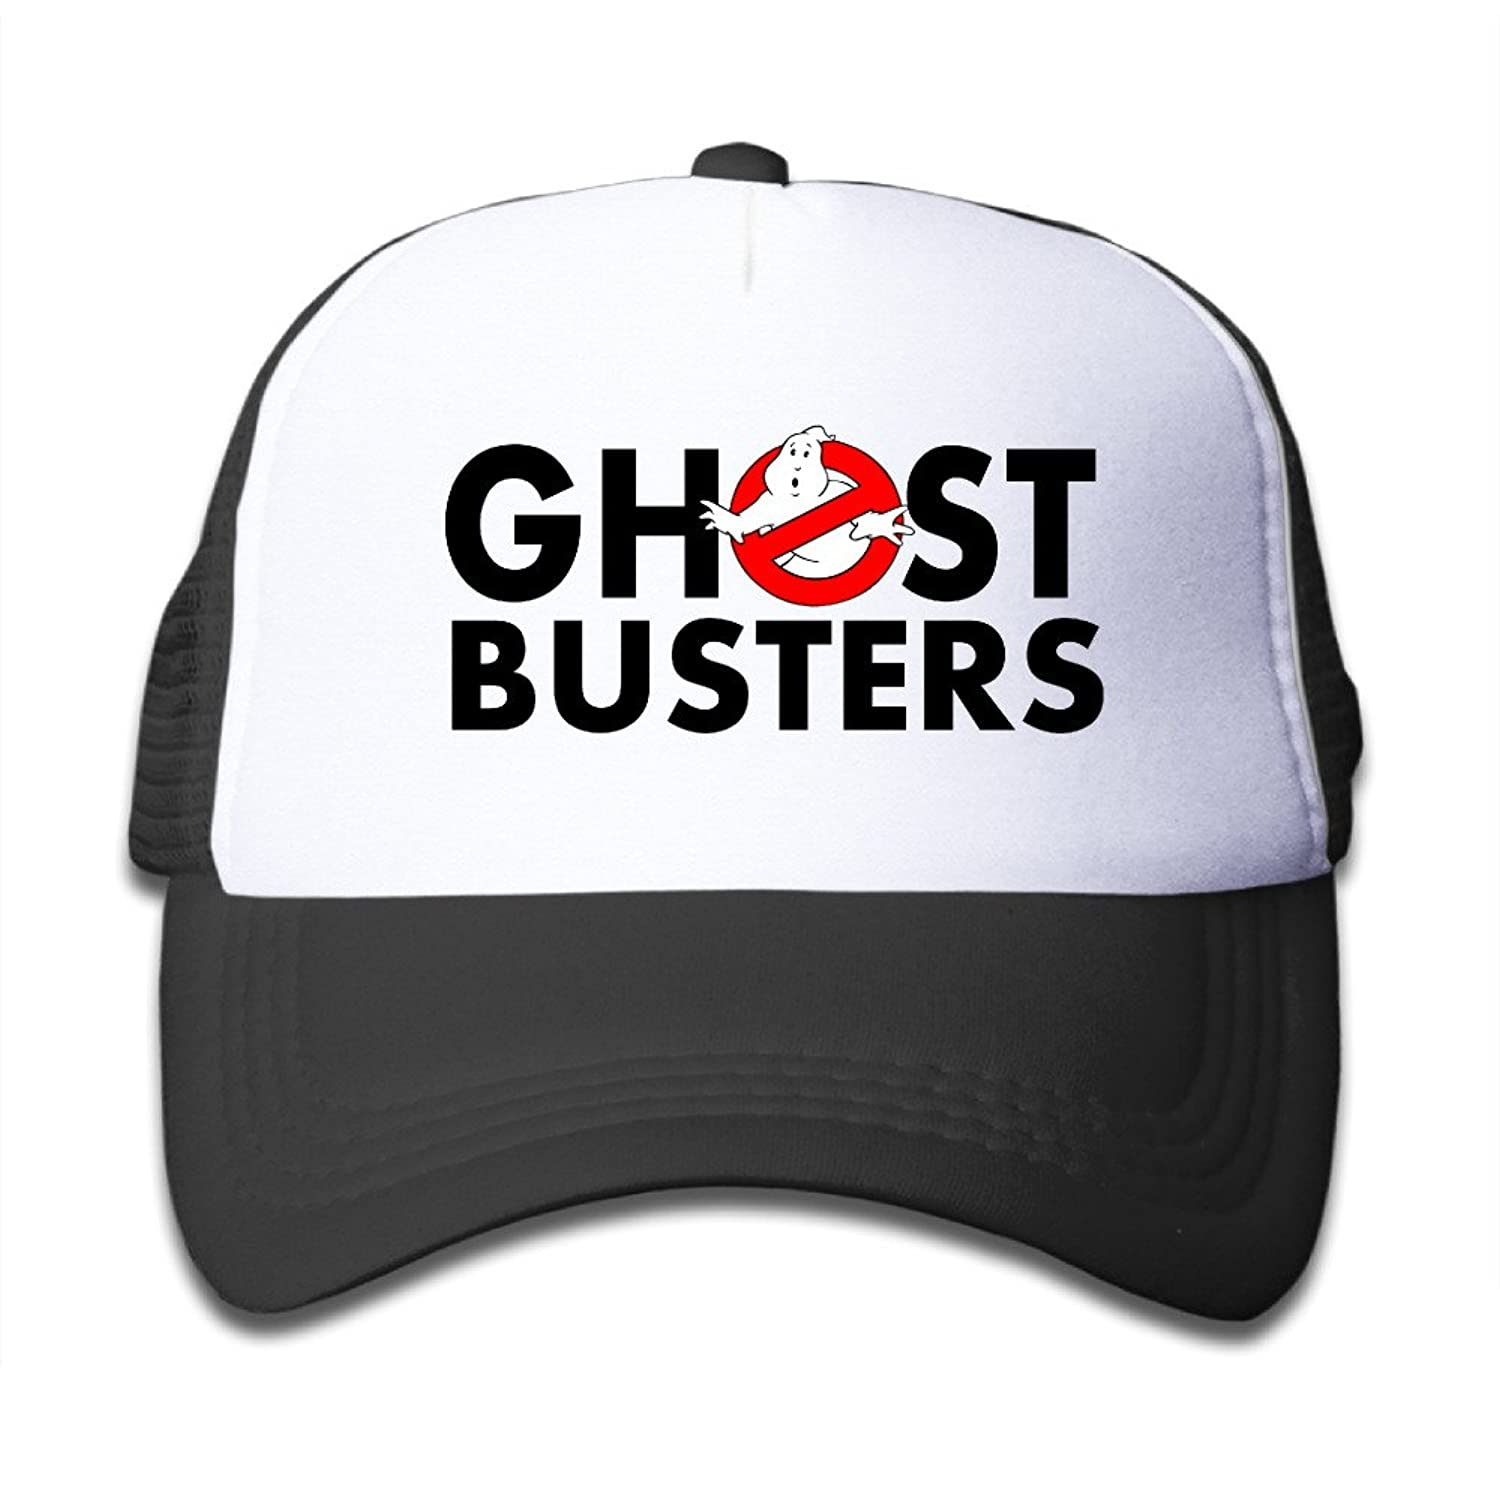 Kids Cap Ghost Busters Adjustable Cool Snapback